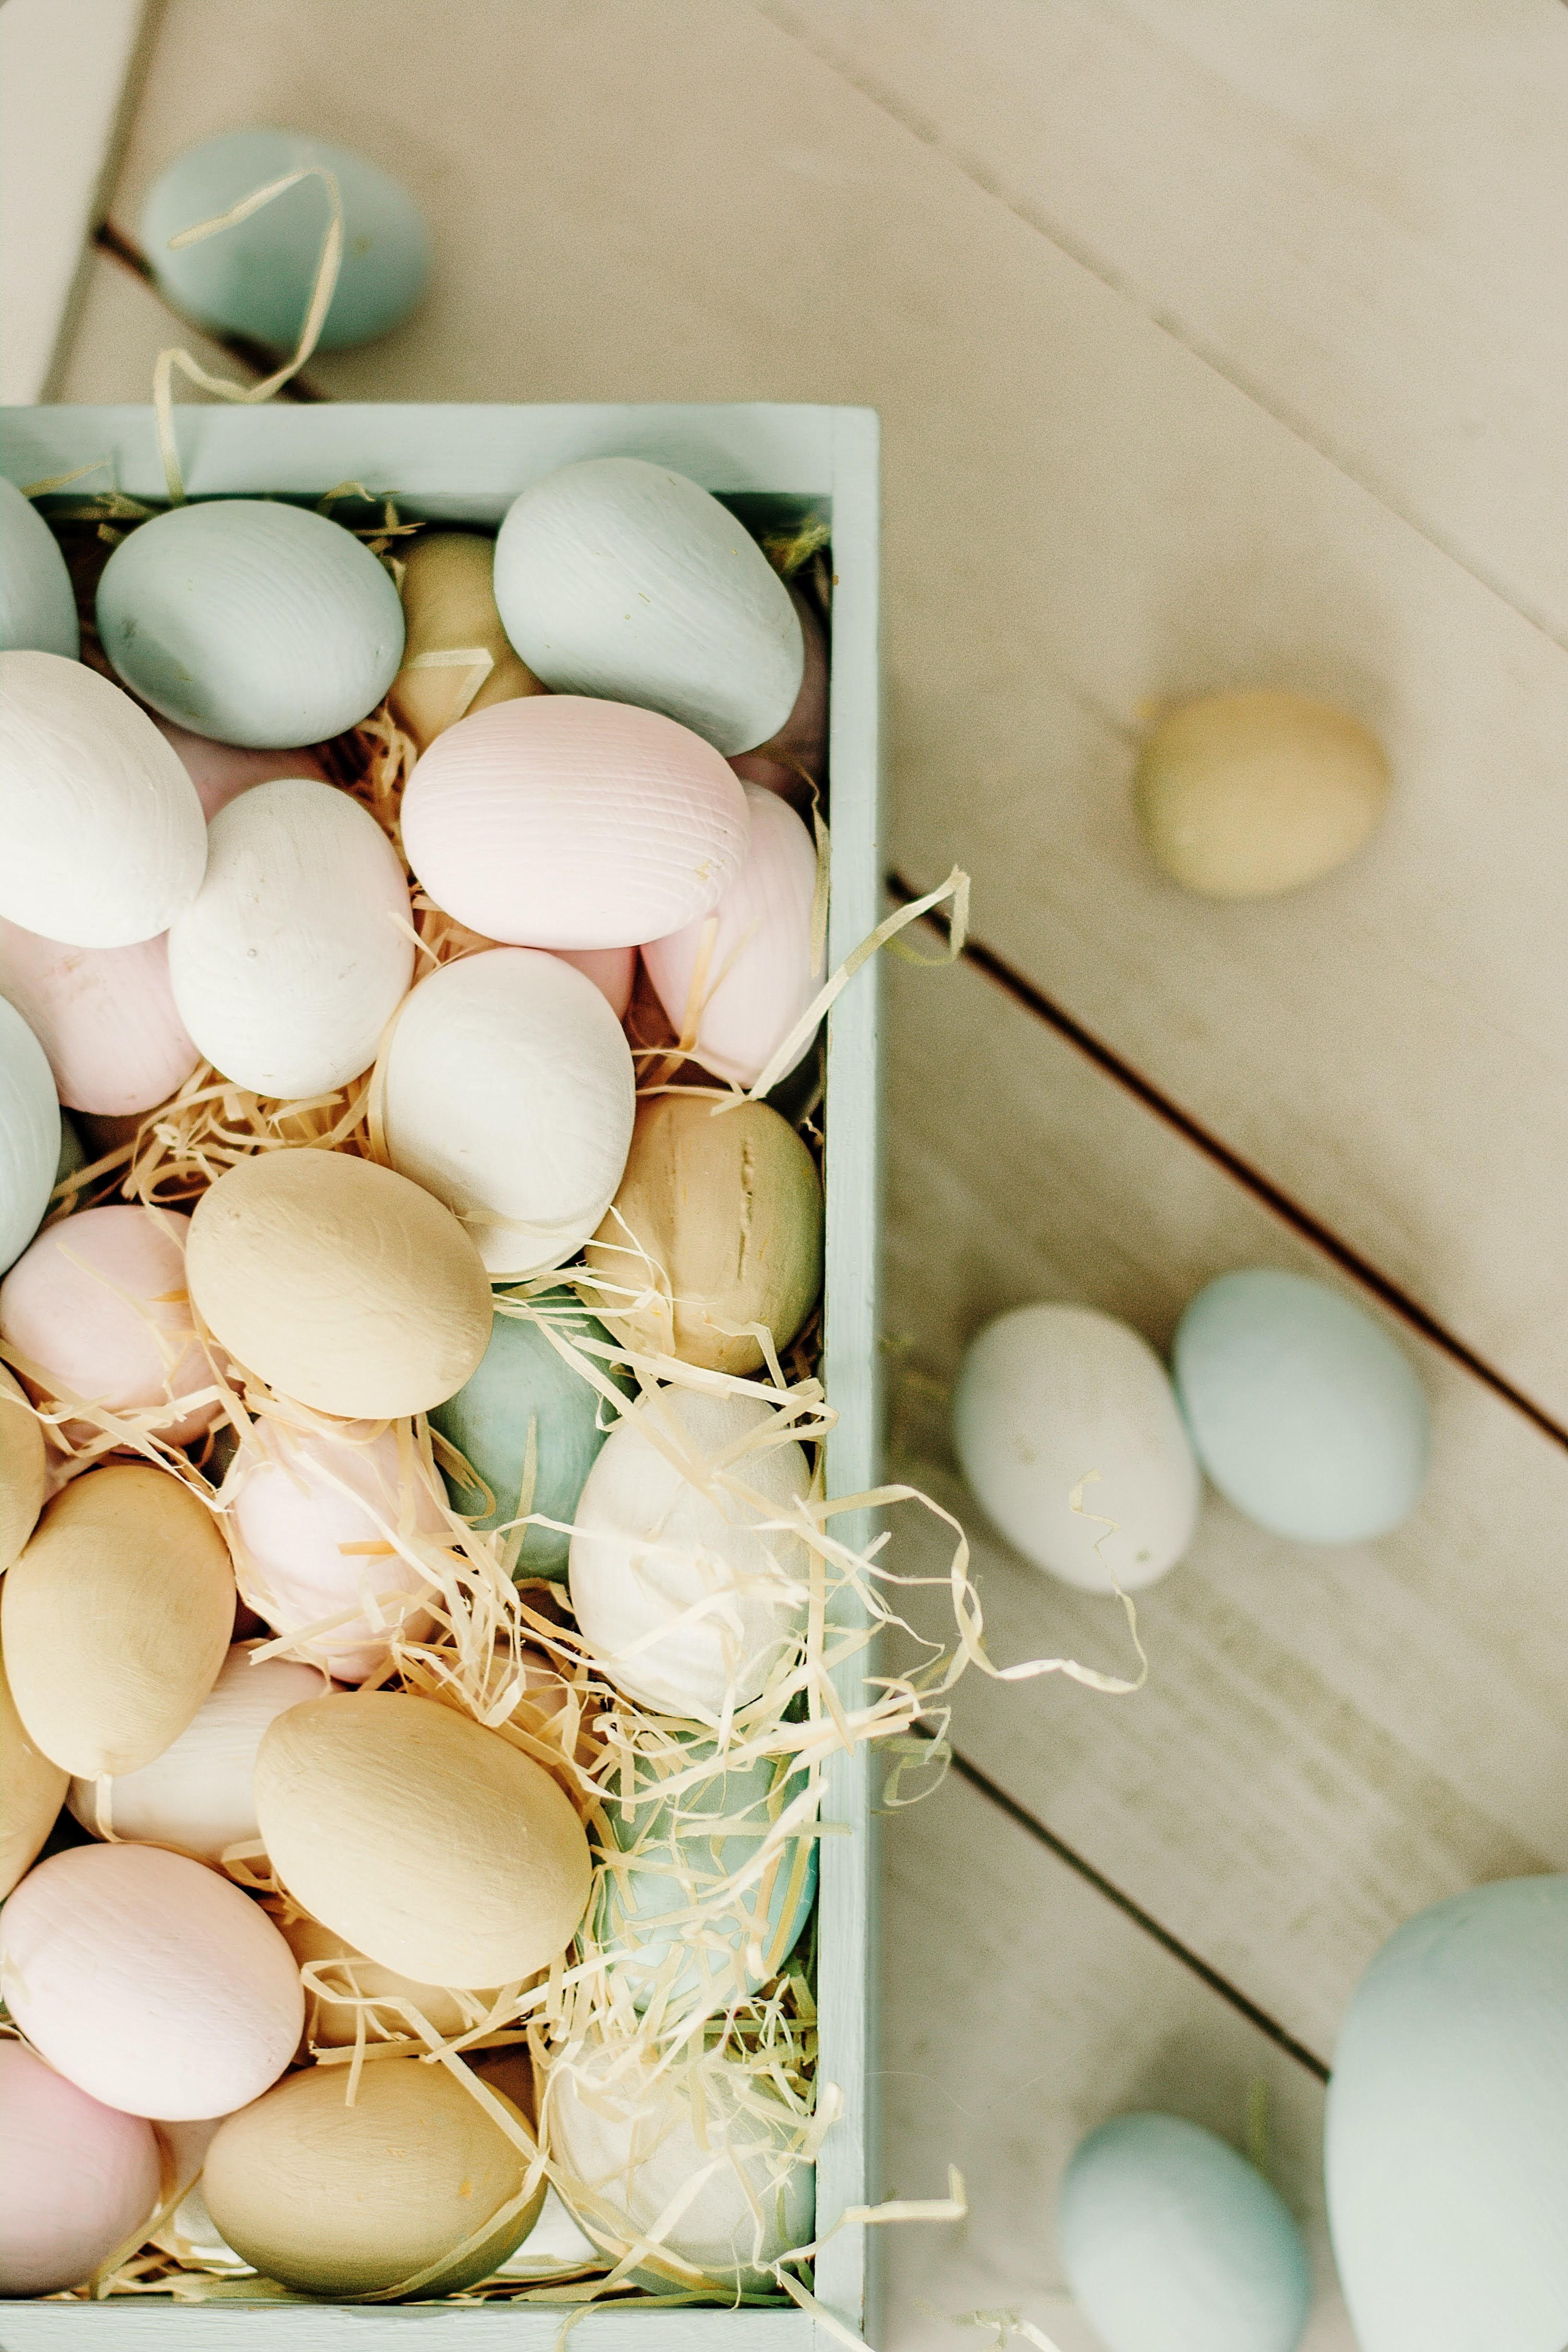 White and Brown Eggs on White Wooden Tray | Photo by Євгенія Височина via Unsplash